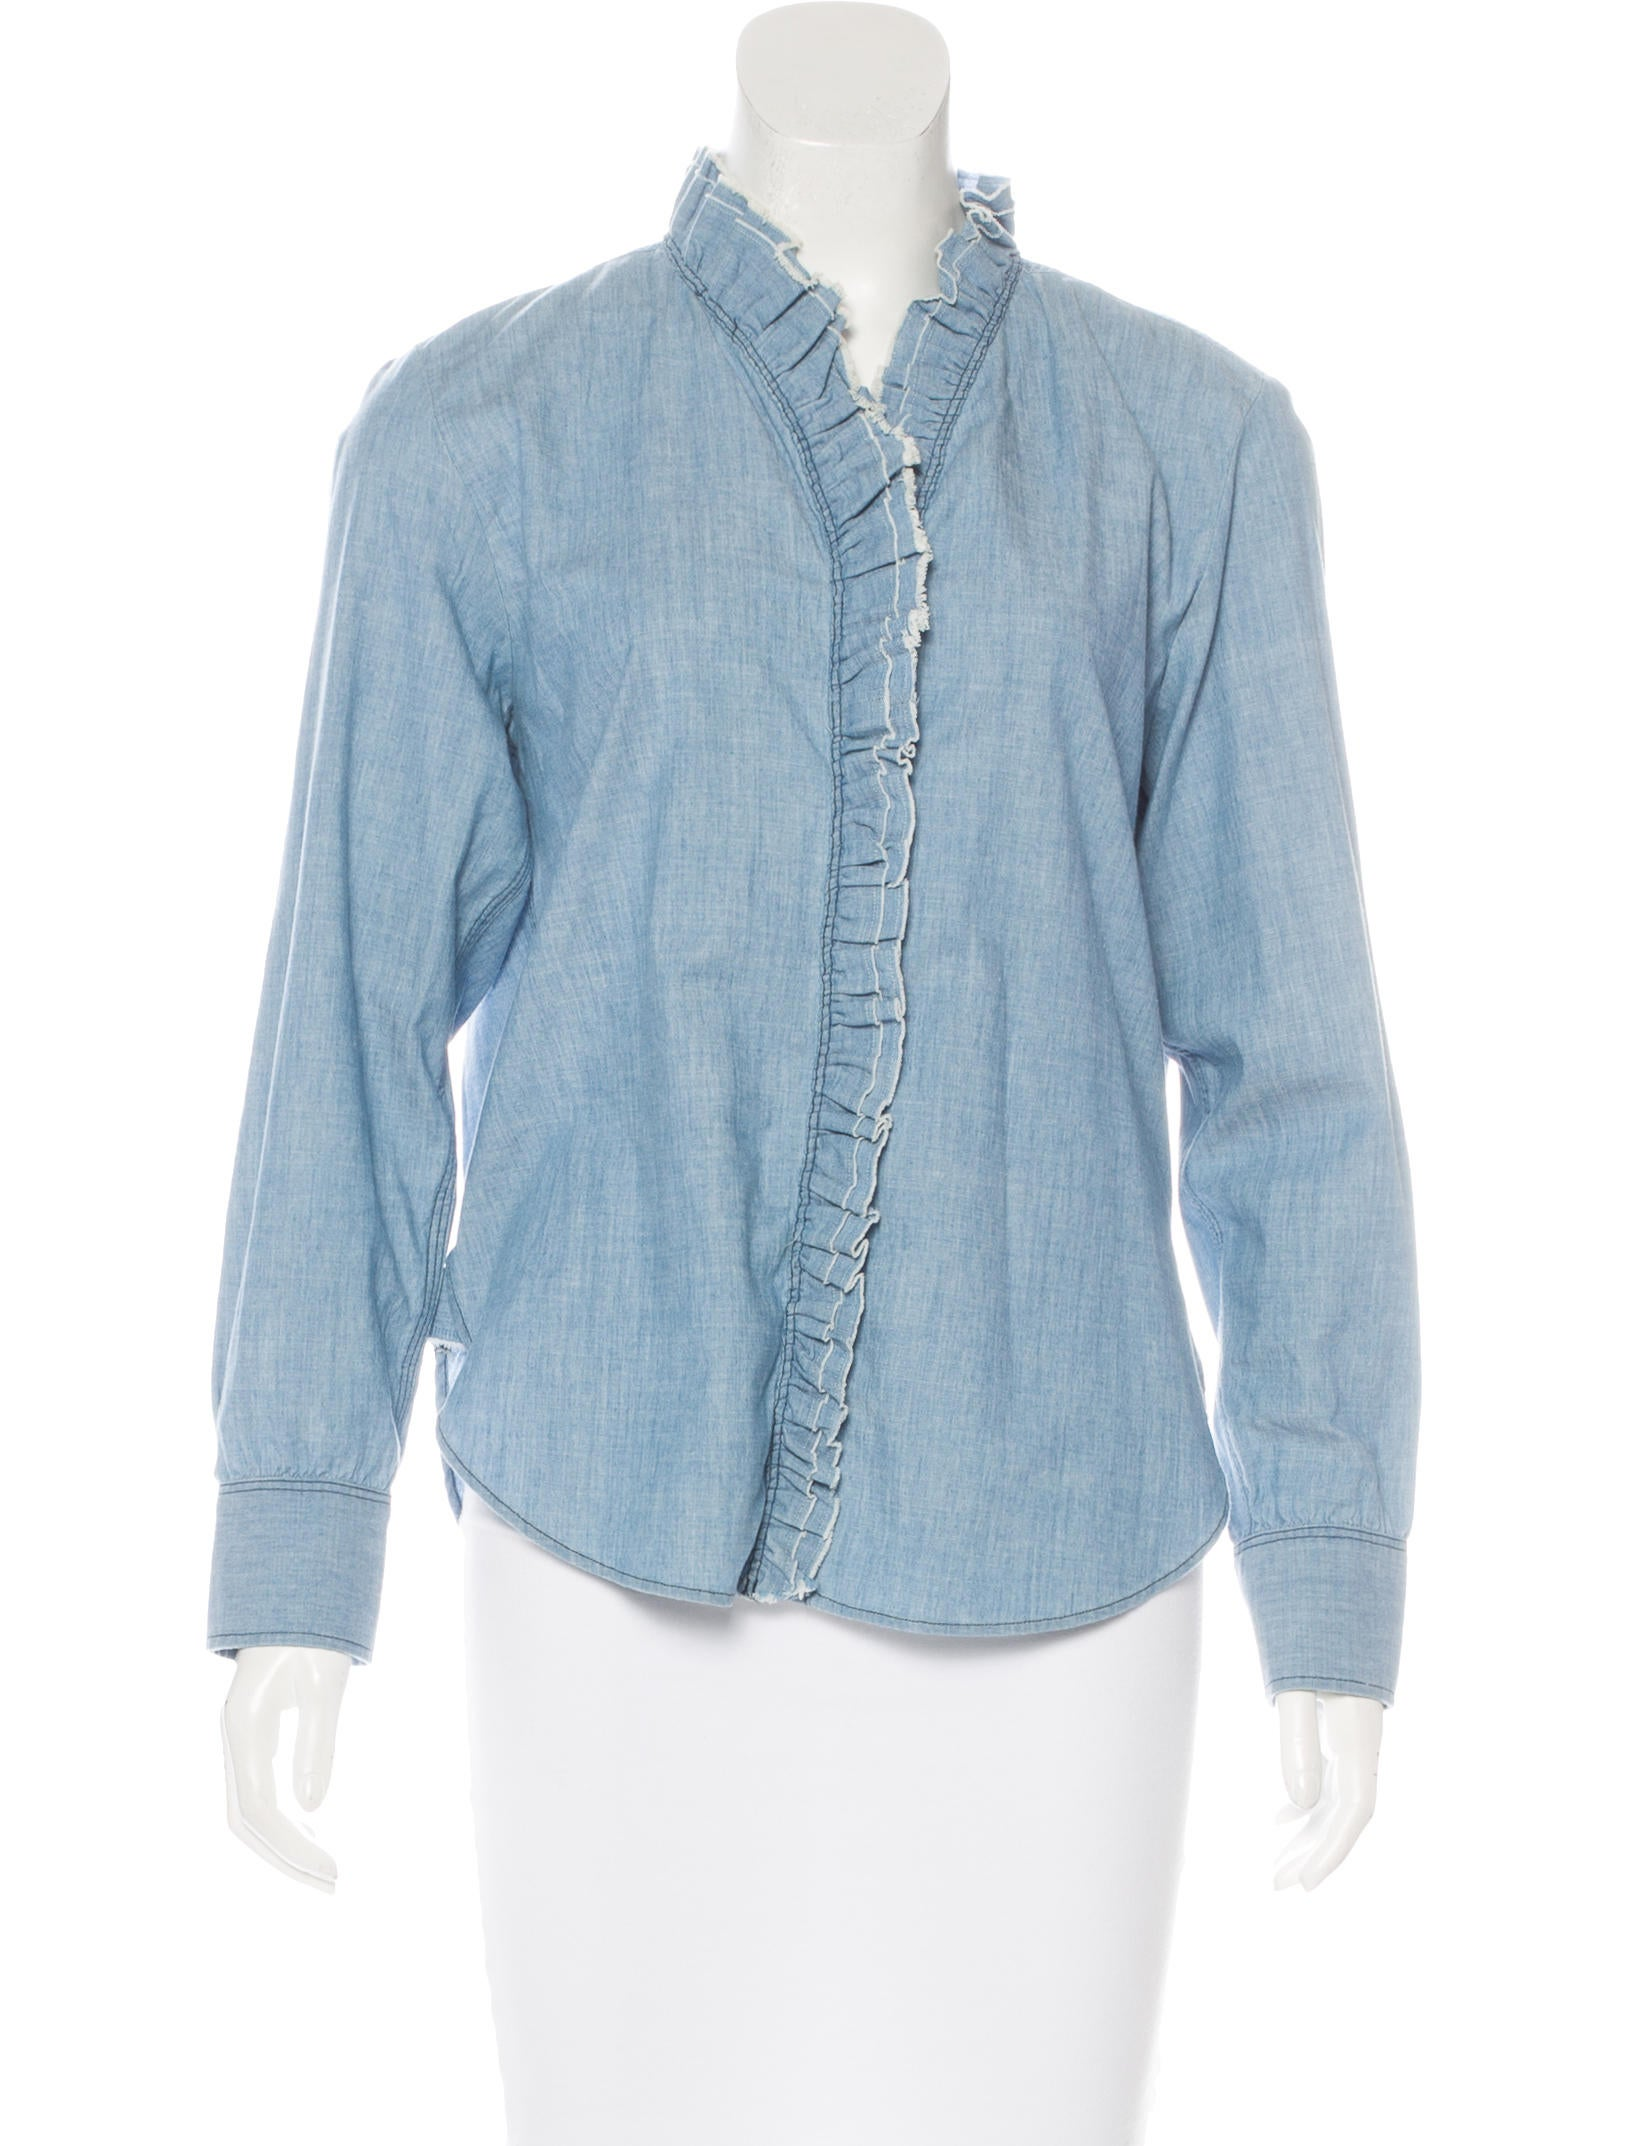 Toile isabel marant chambray ruffle trimmed top tops for Chambray top